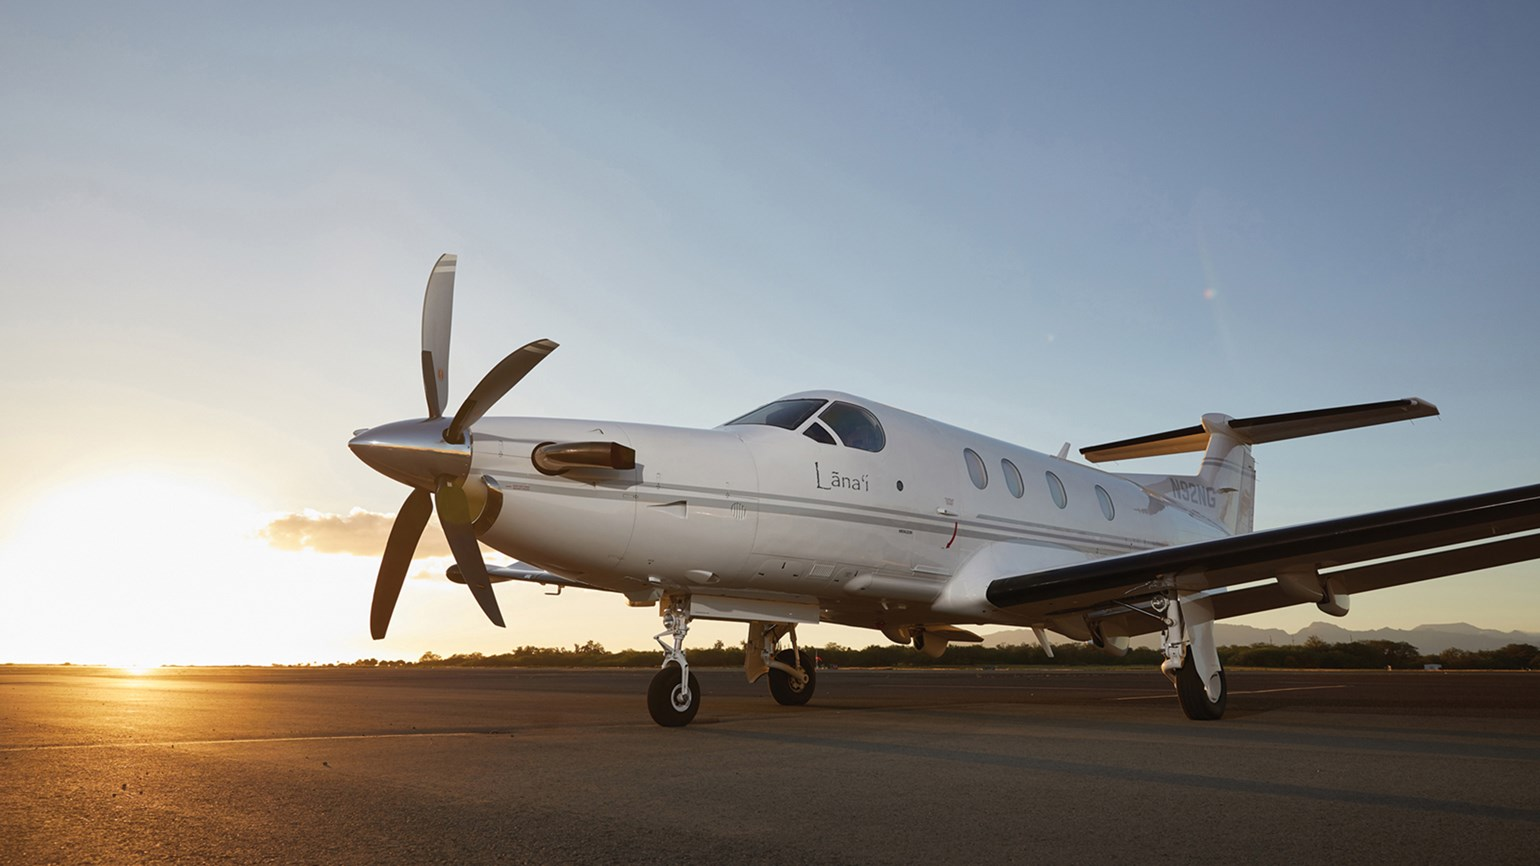 Four Seasons Lanai launches air charter